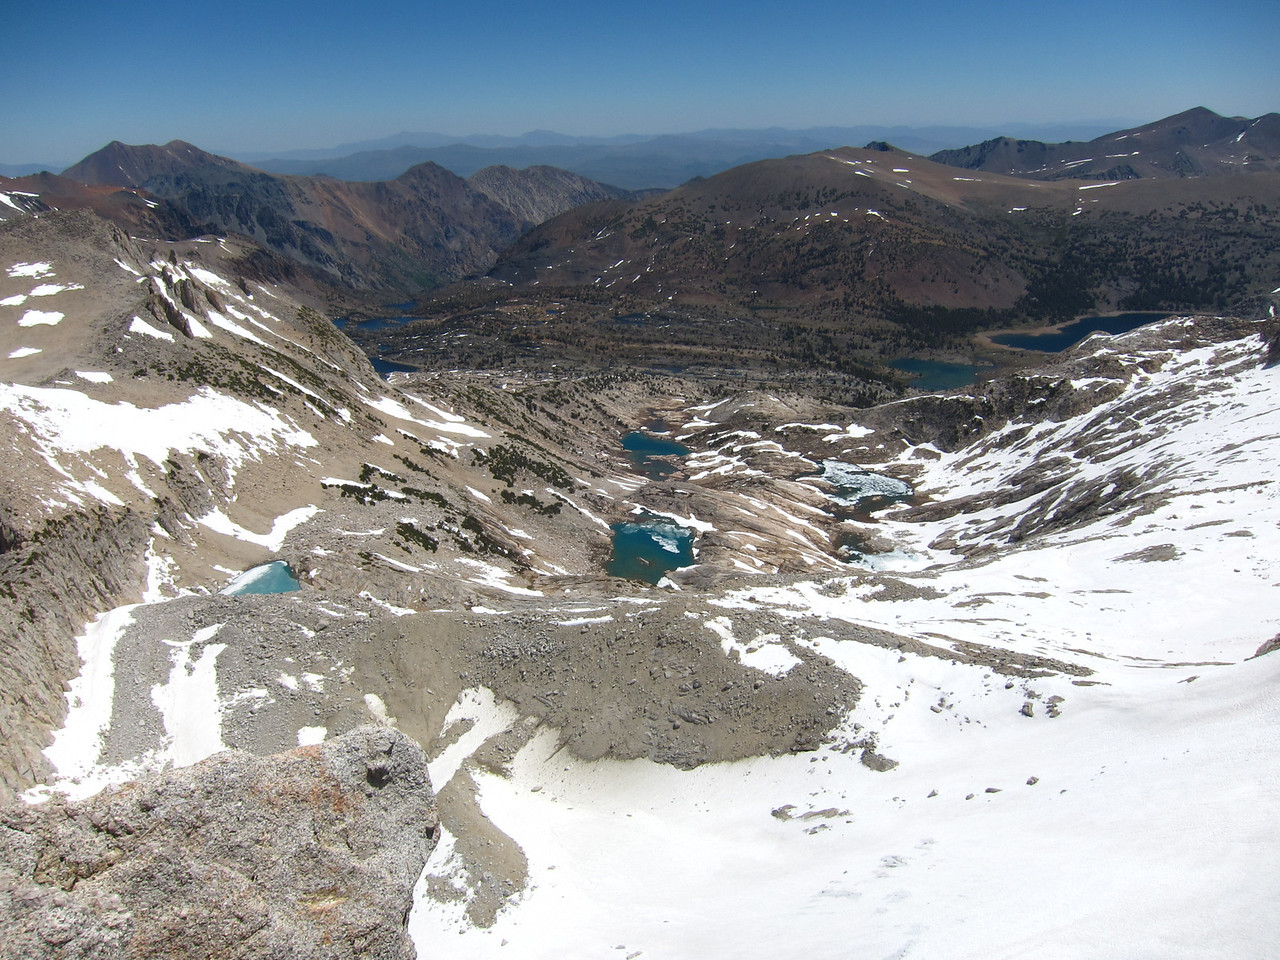 From the top of Conness